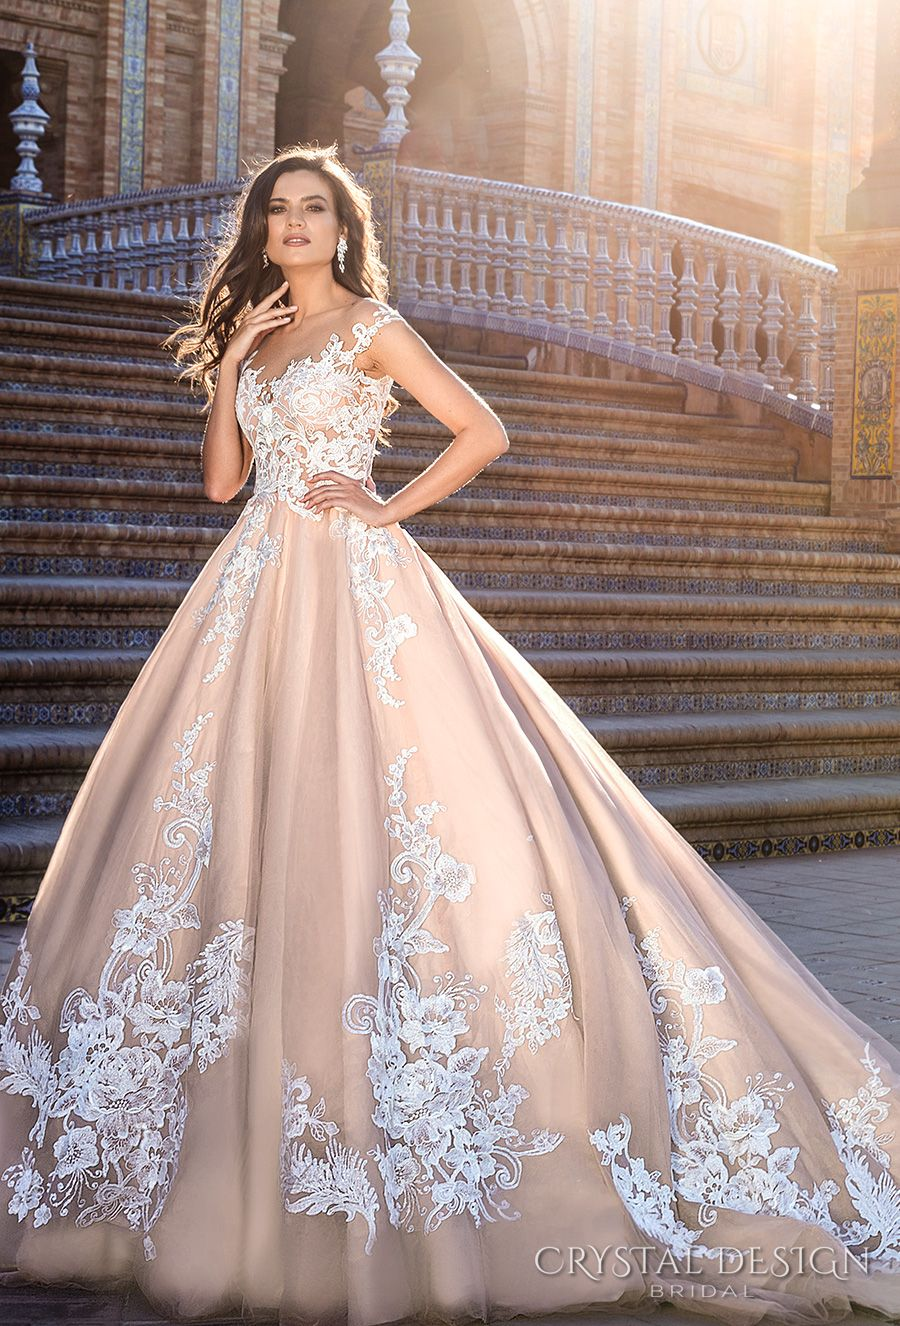 Beautiful Wedding Dresses From The 2017 Crystal Design Collection Sevilla Bridal Campaign Wedding Inspirasi Ball Gown Wedding Dress Ball Gowns Wedding Quincenera Dresses [ 1326 x 900 Pixel ]